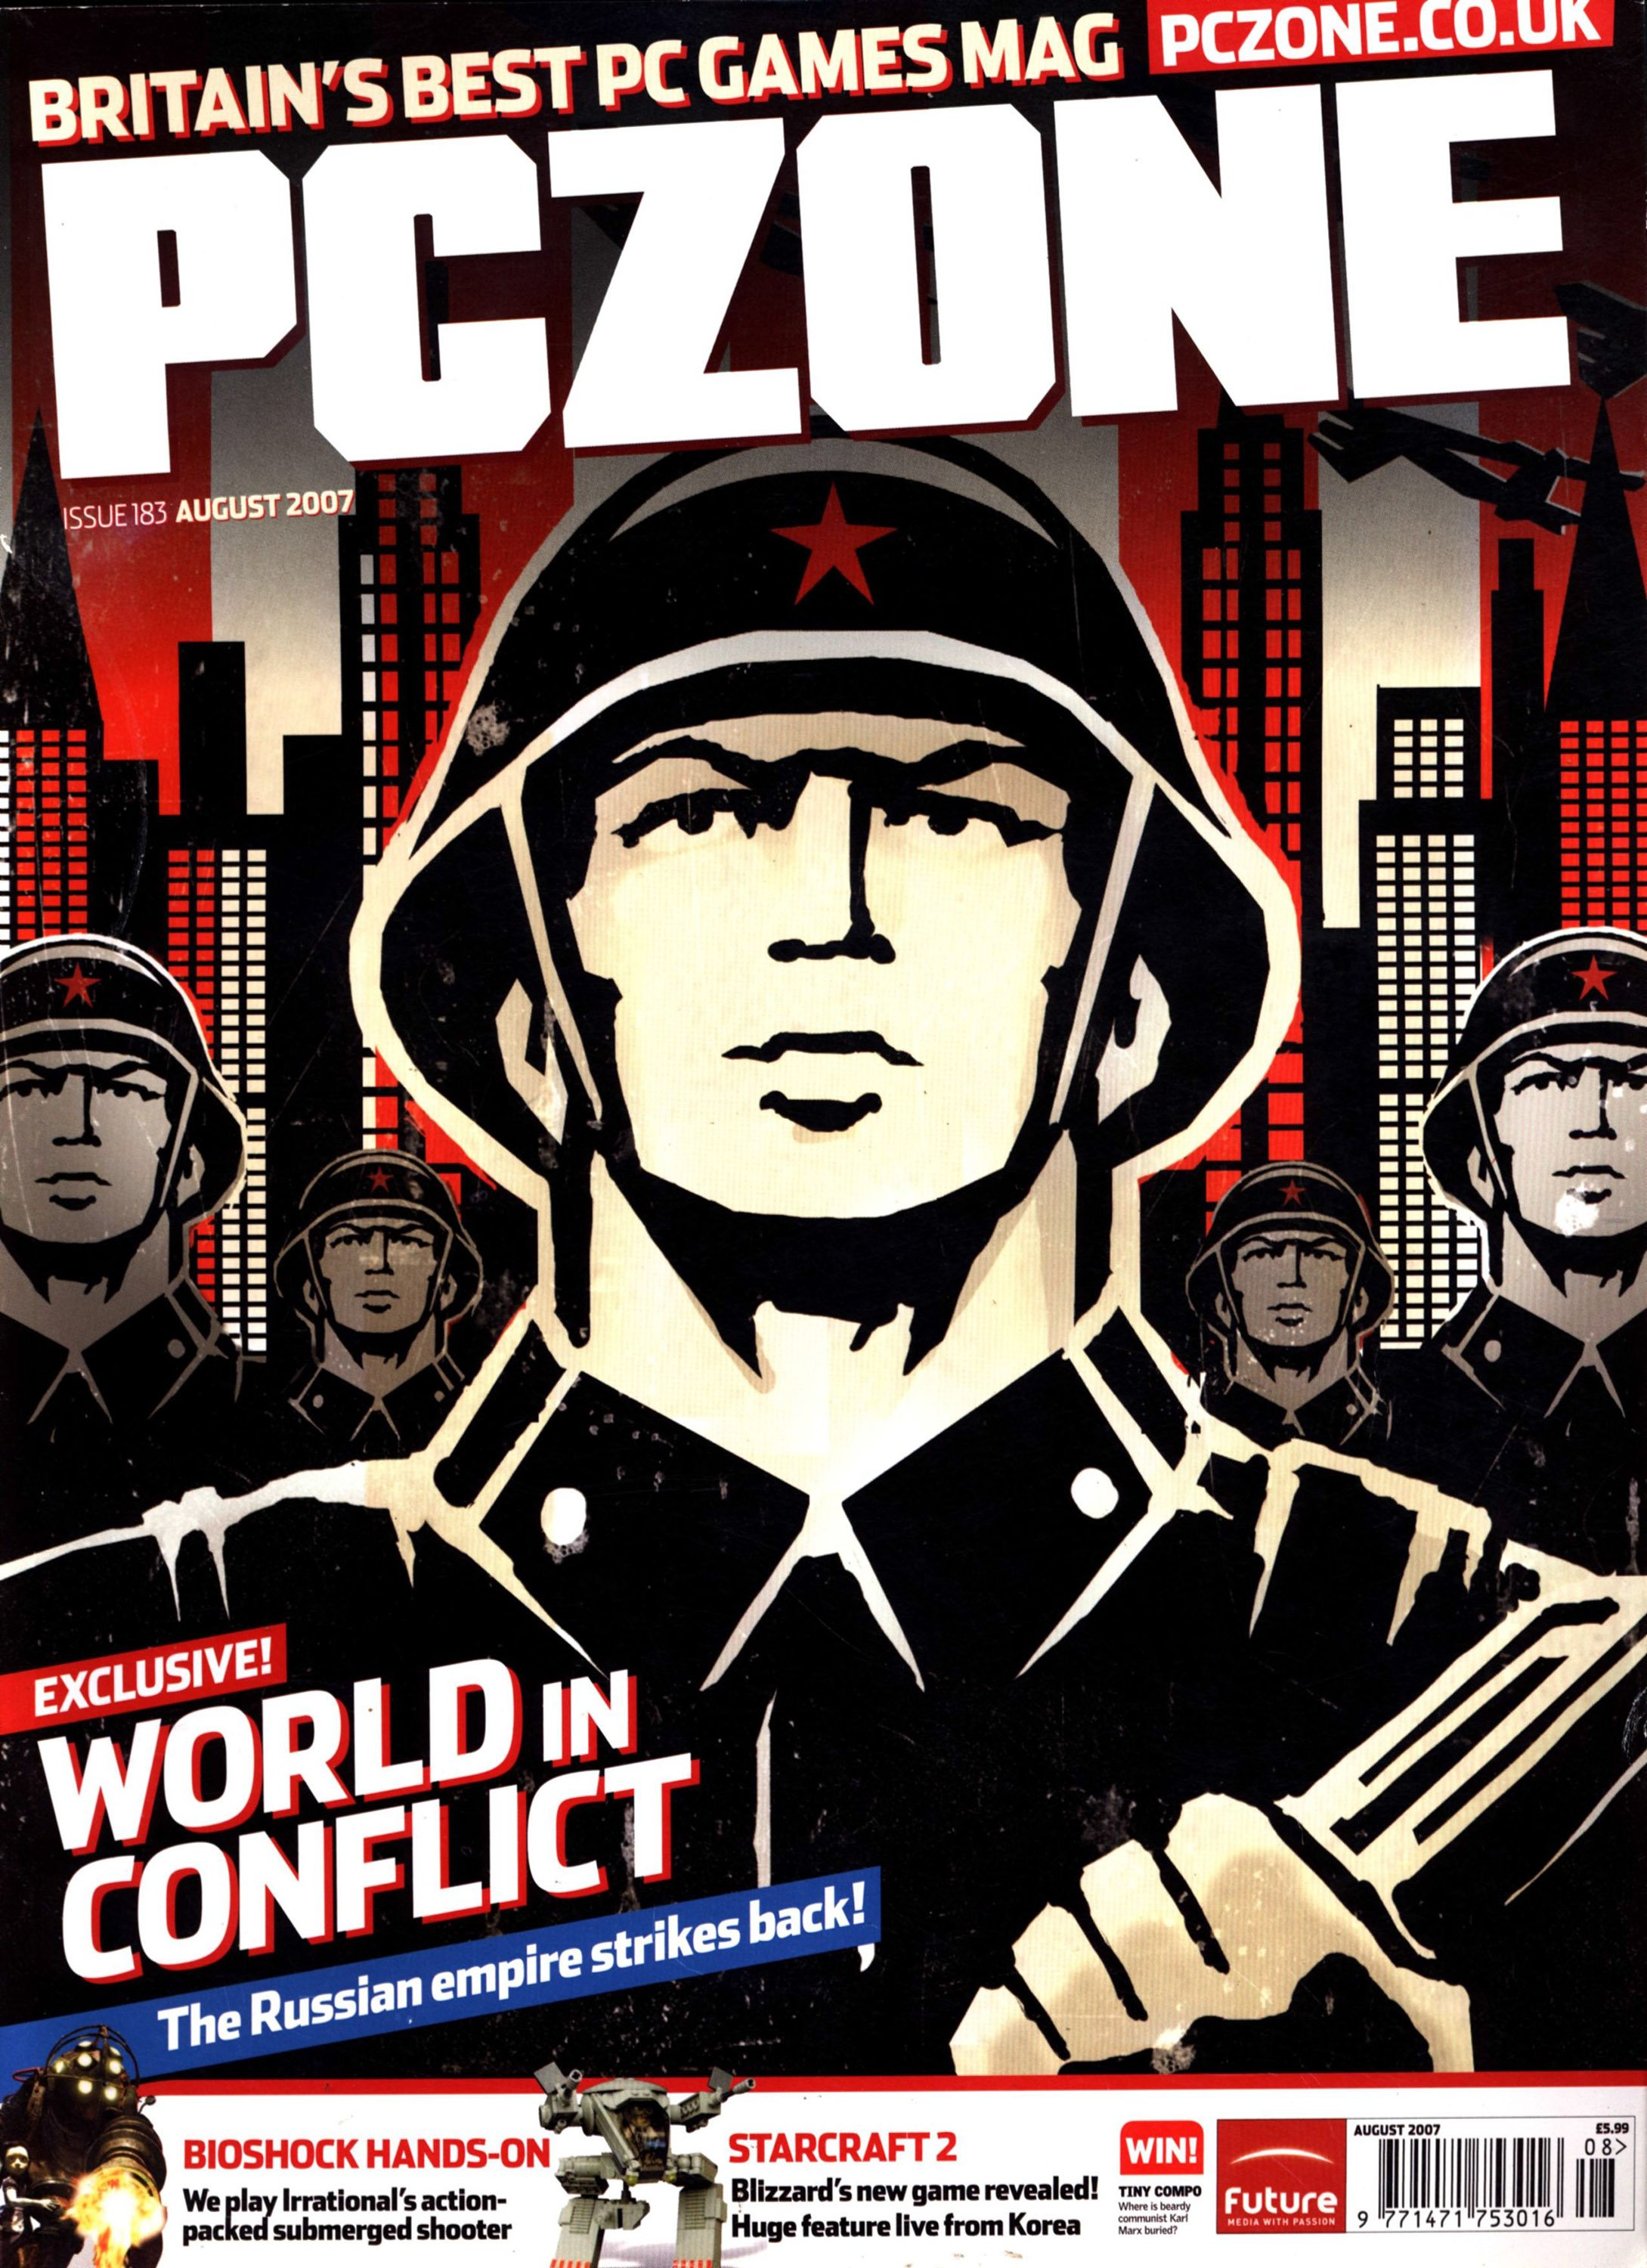 PC Zone Issue 183 (August 2007)